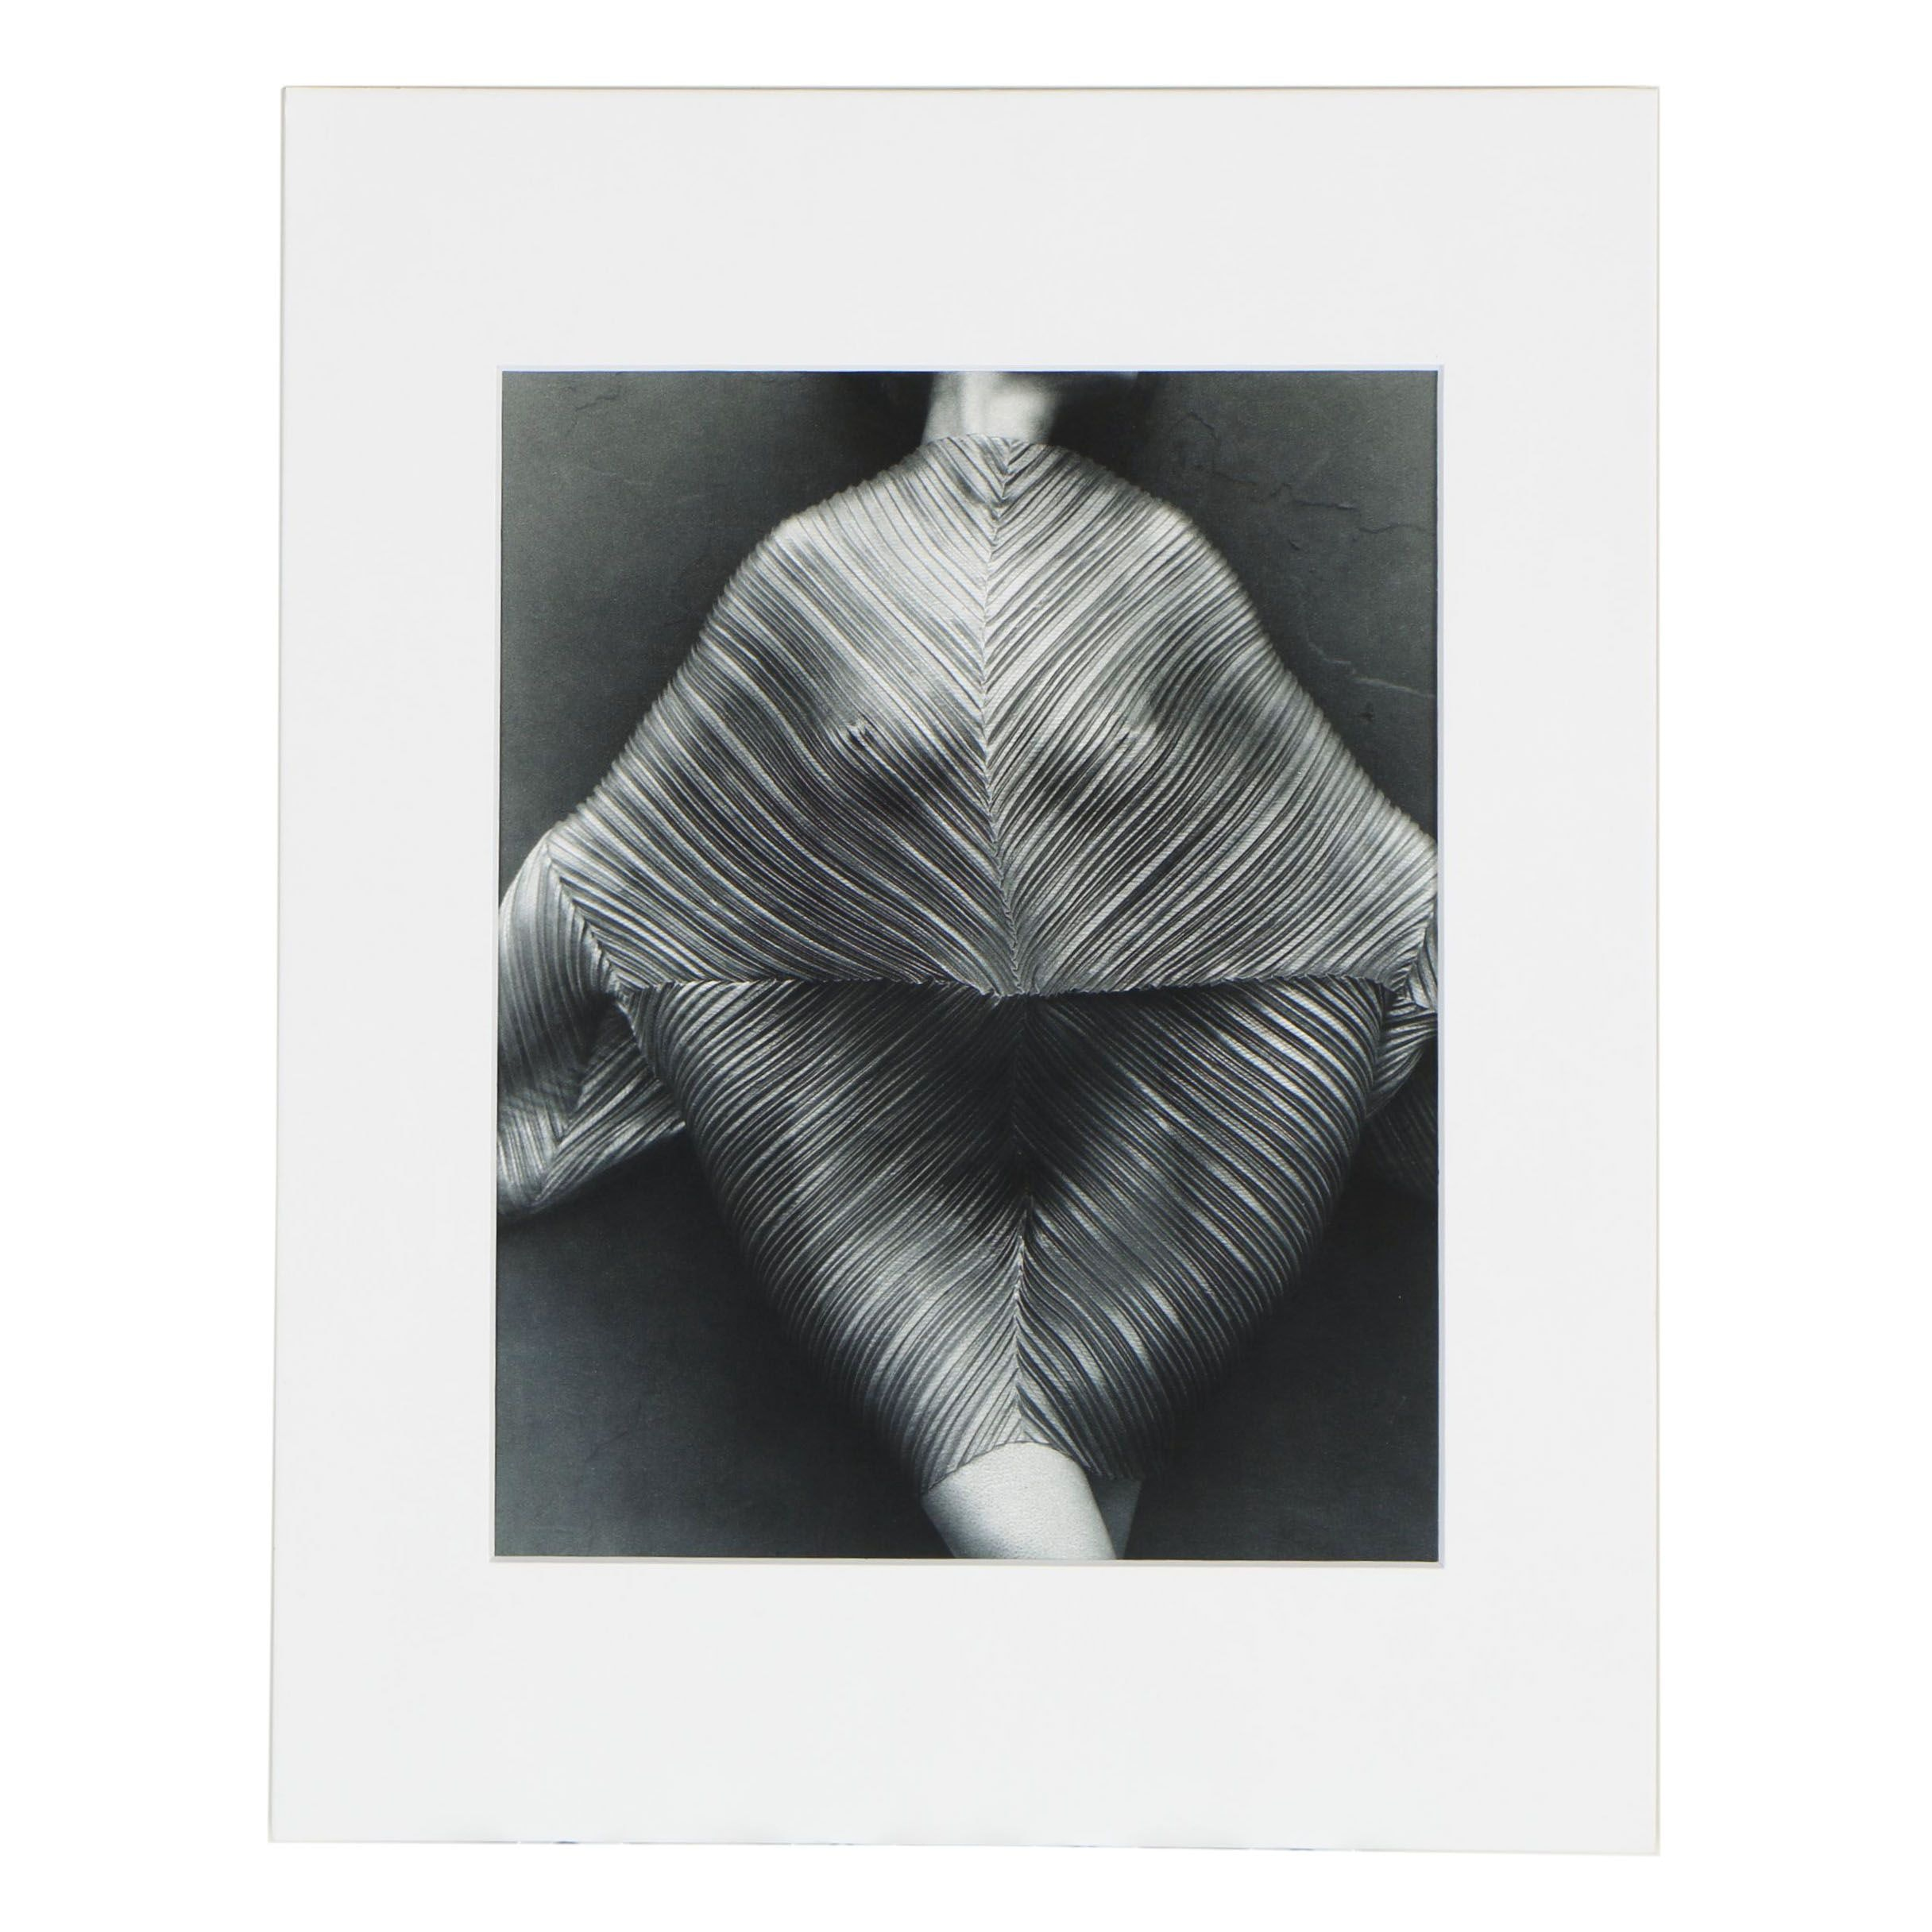 """Publisher Copy Digital Photograph after Herb Ritts """"Ruffled Fan Palm"""", 1989"""